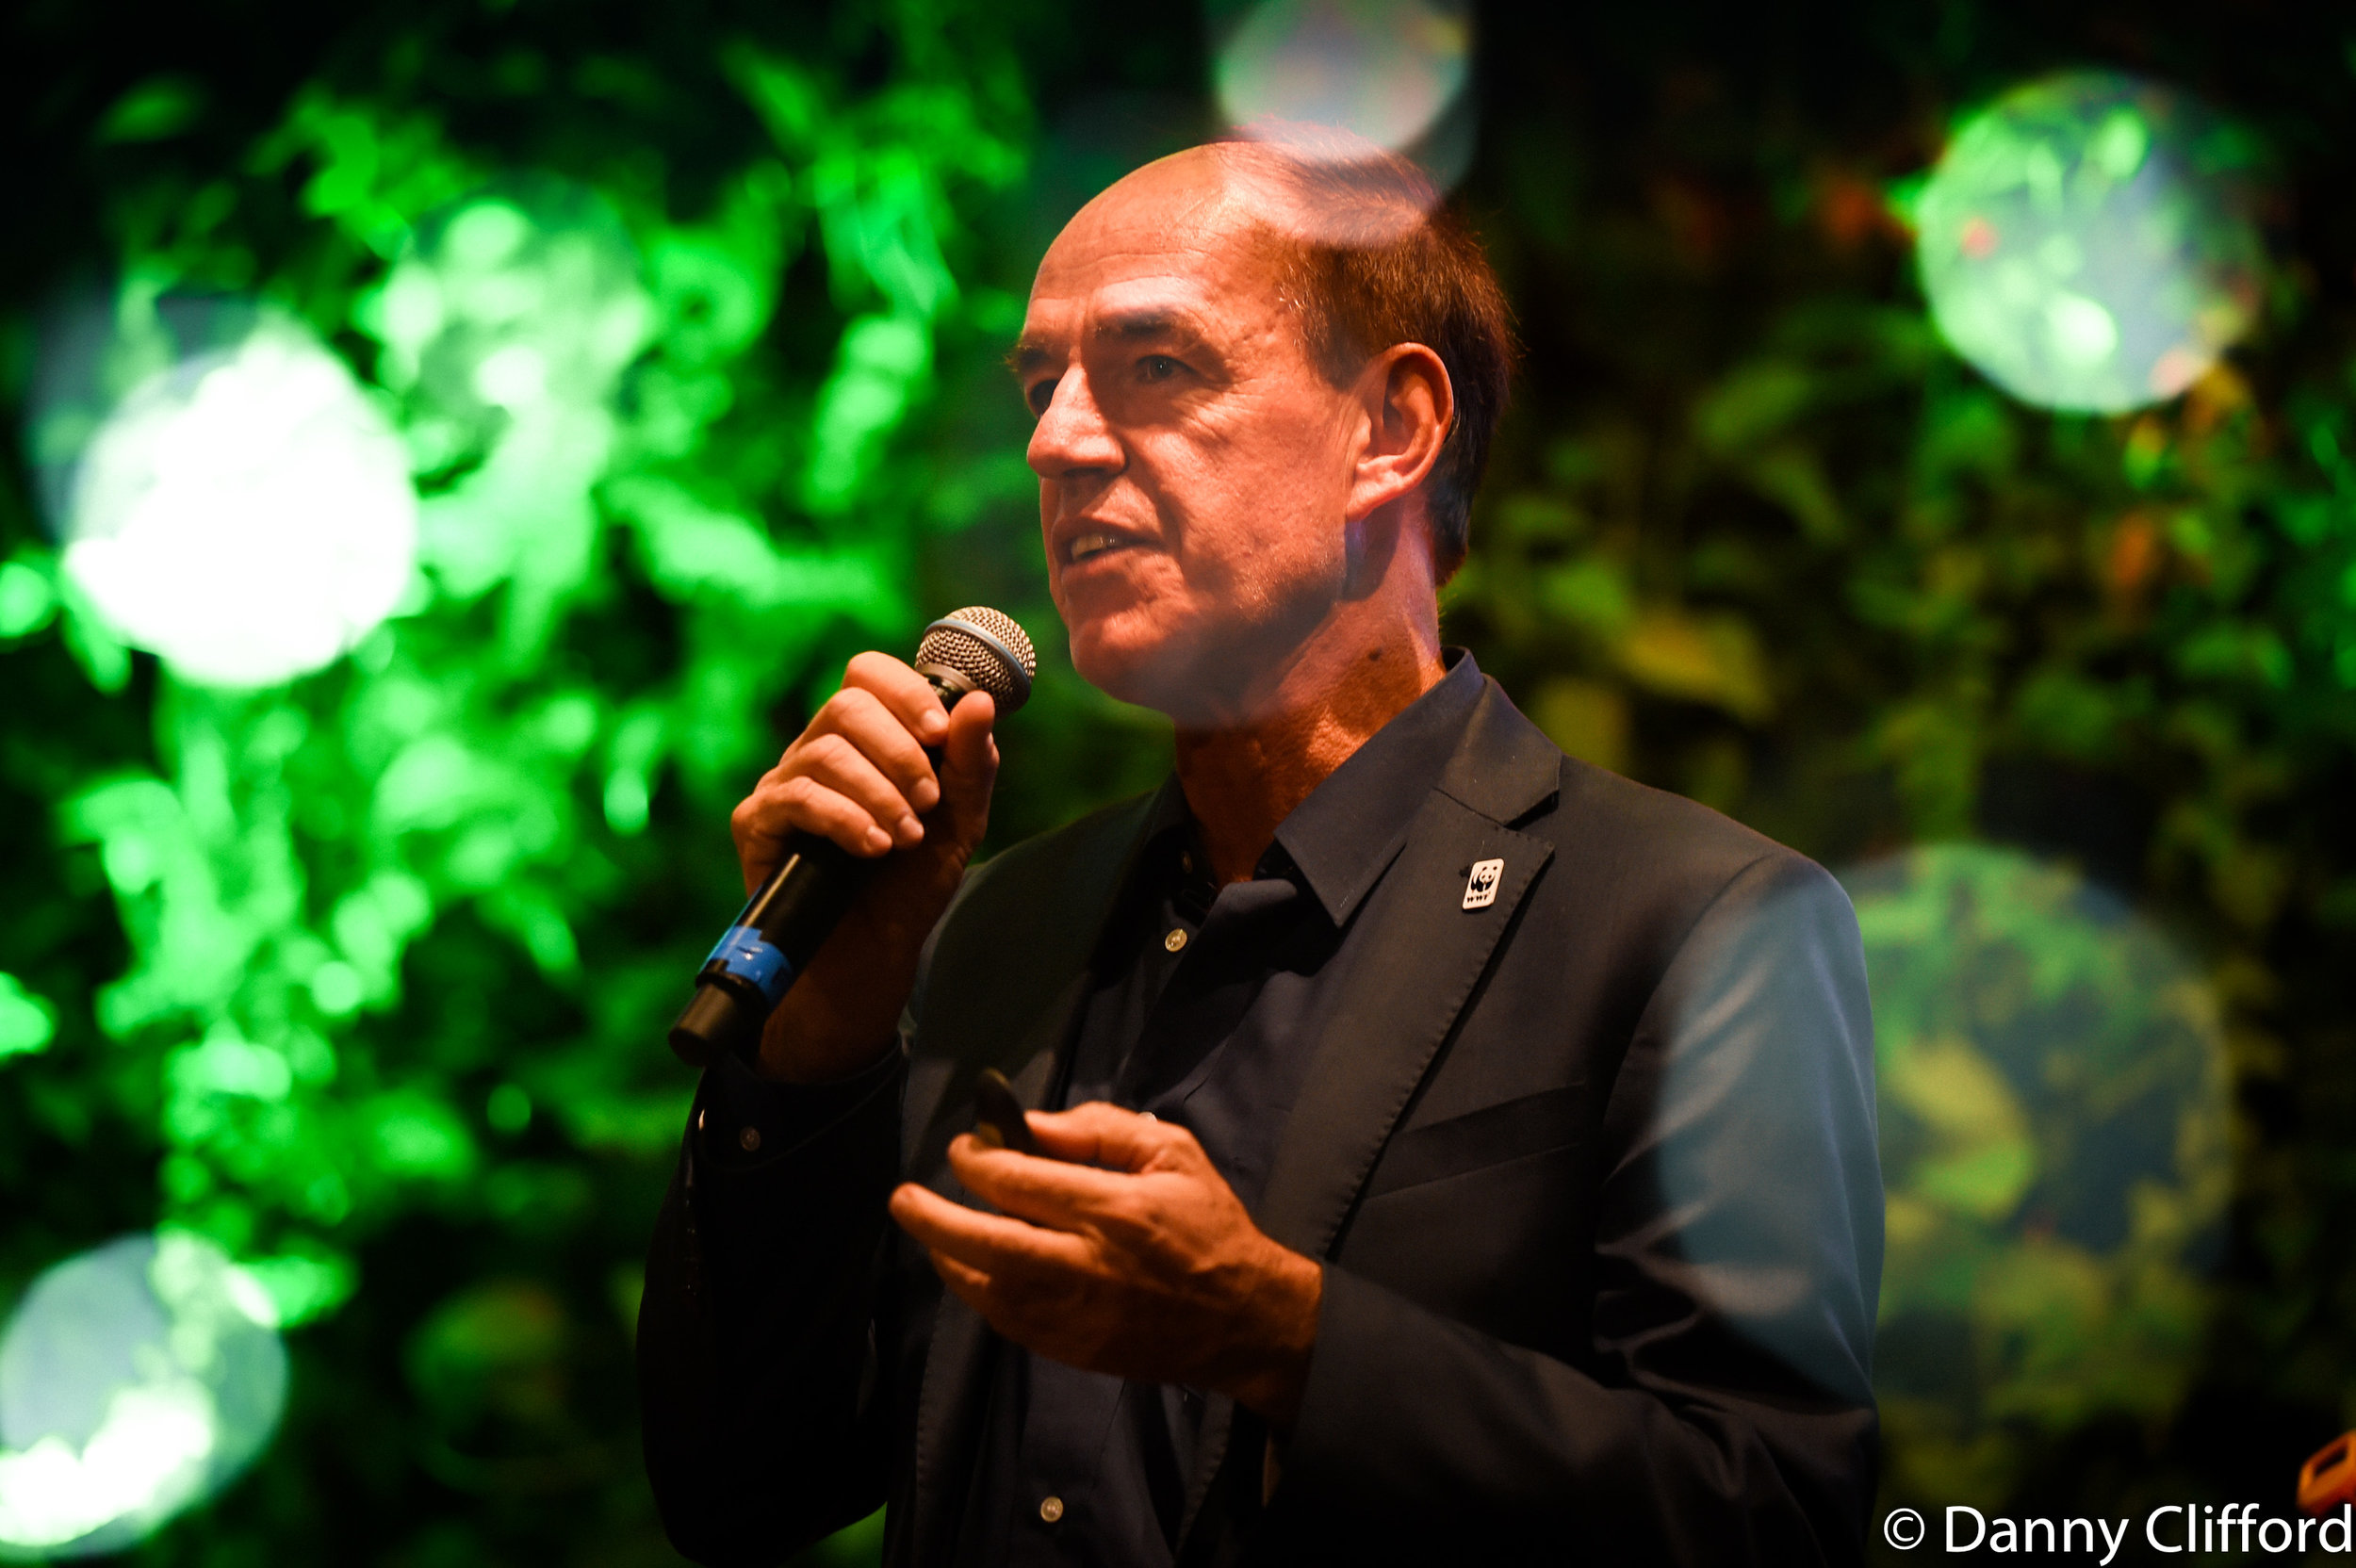 WWF International Director General, Marco Lambertini speaking about WWF & our planet.